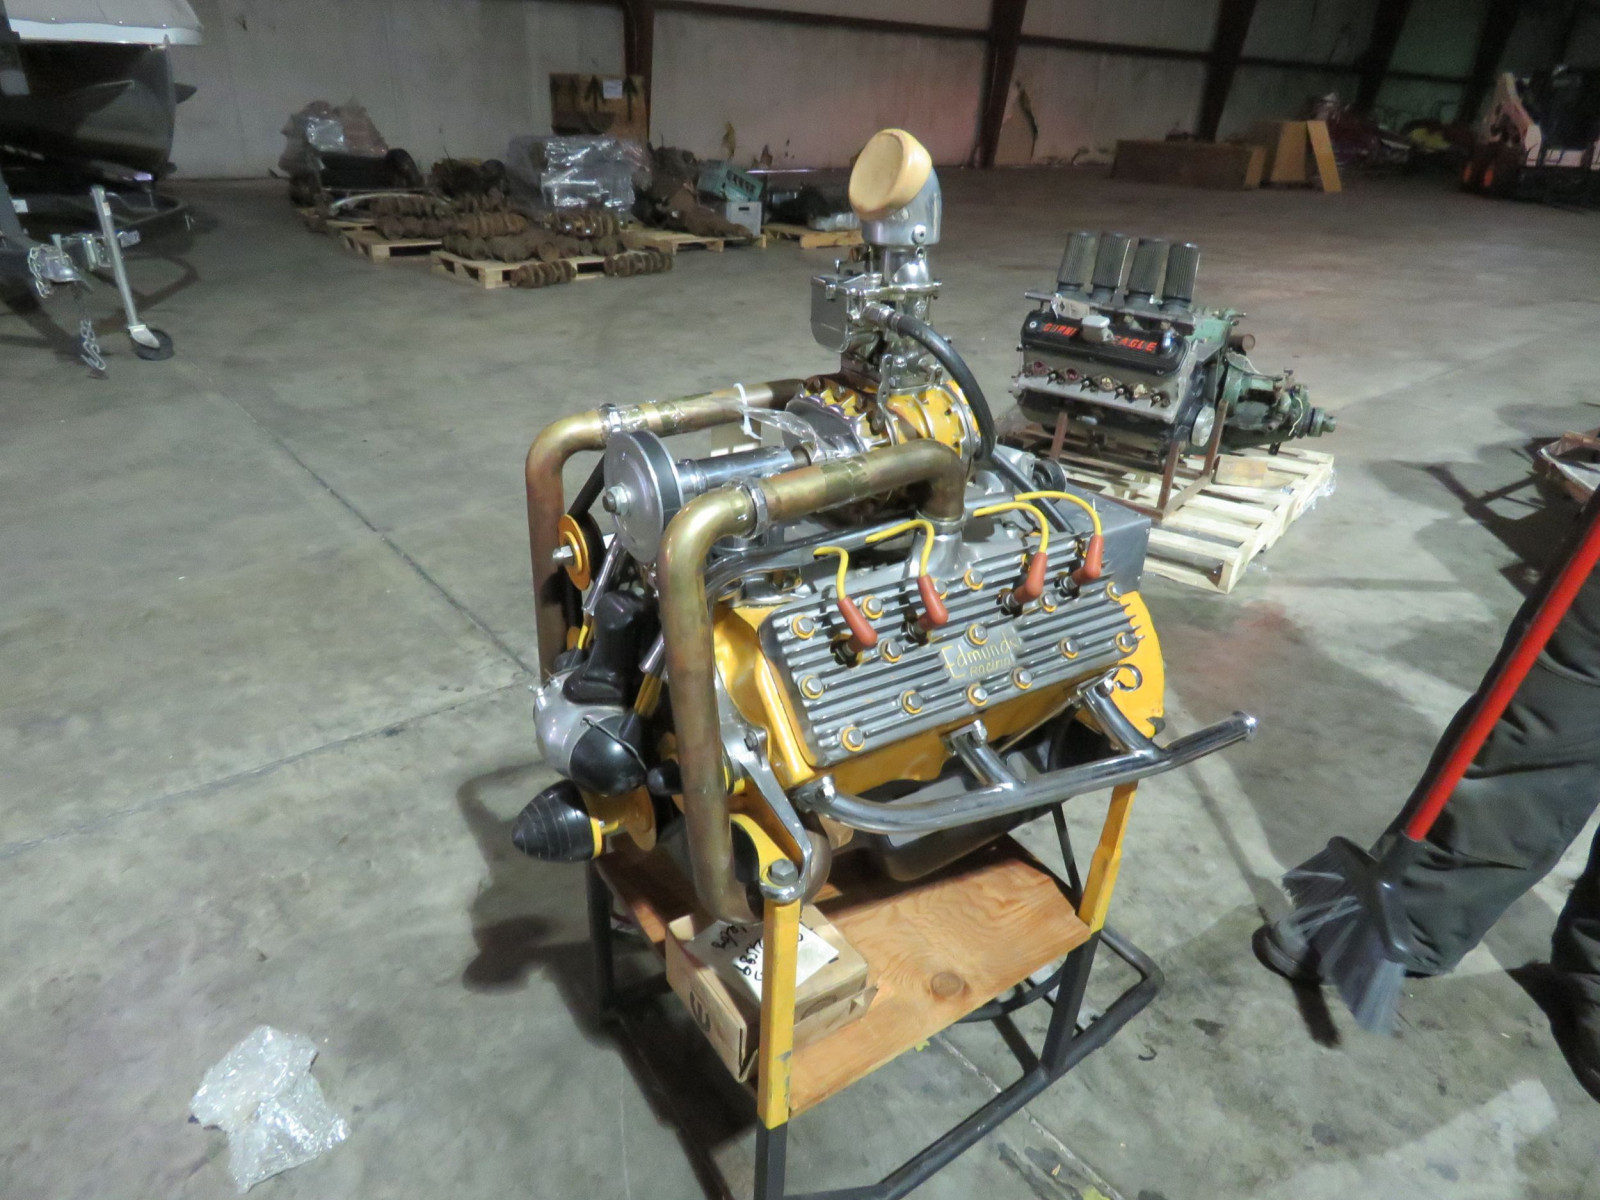 Fabulous Display Hotrod Flathead Ford V8 Motor - Image 12